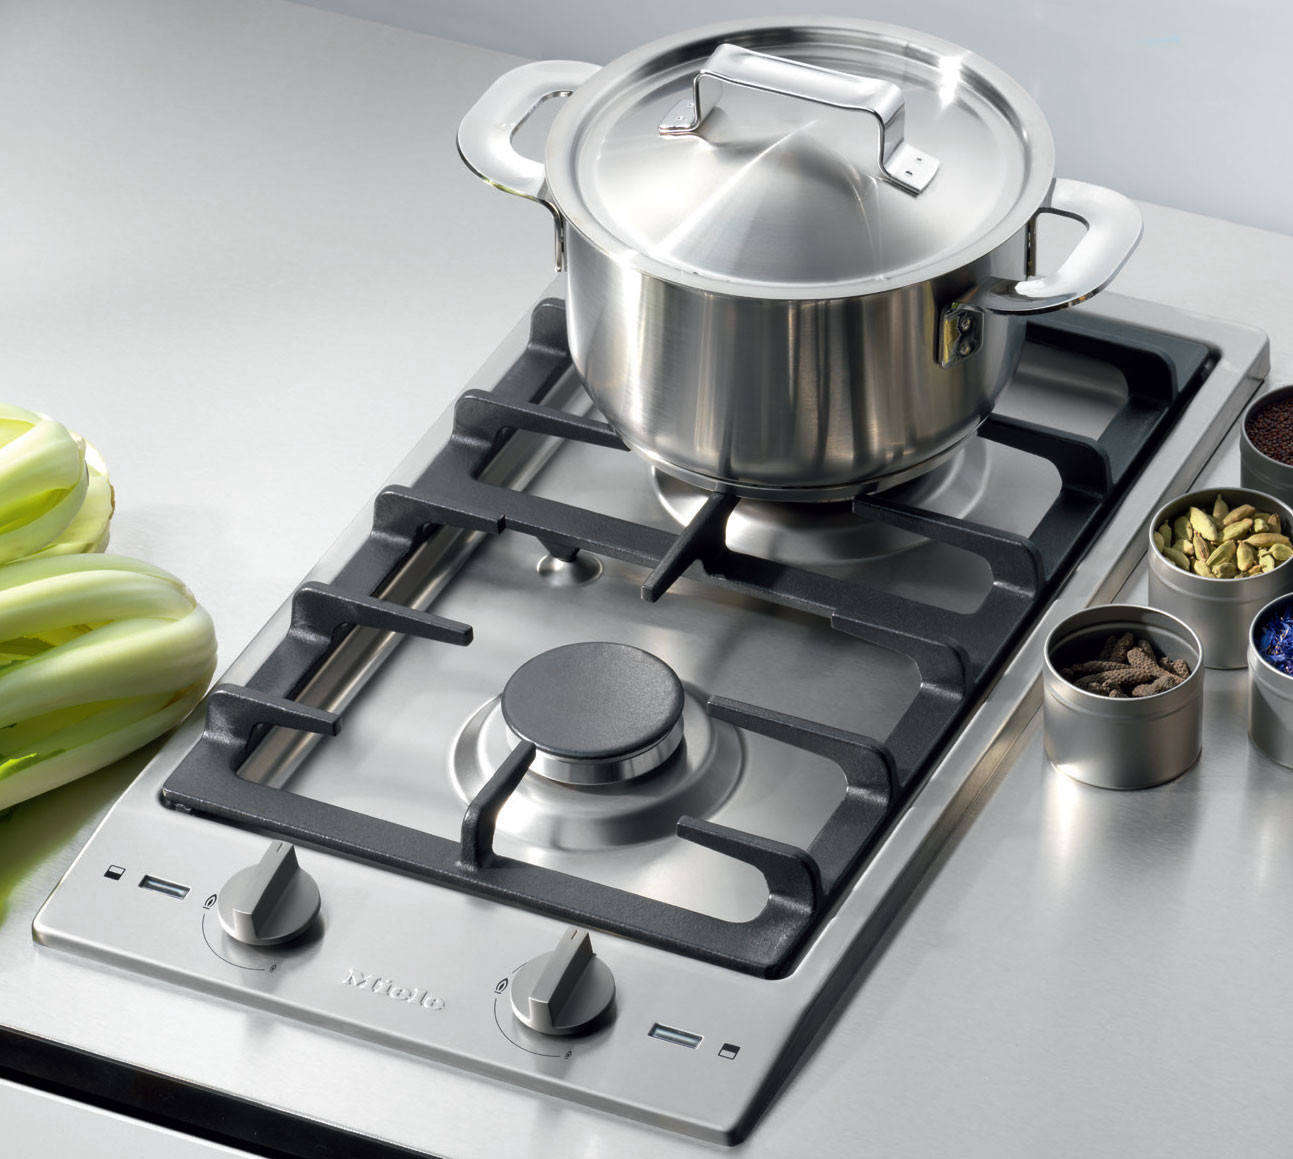 Miele offers anultra-compact src=